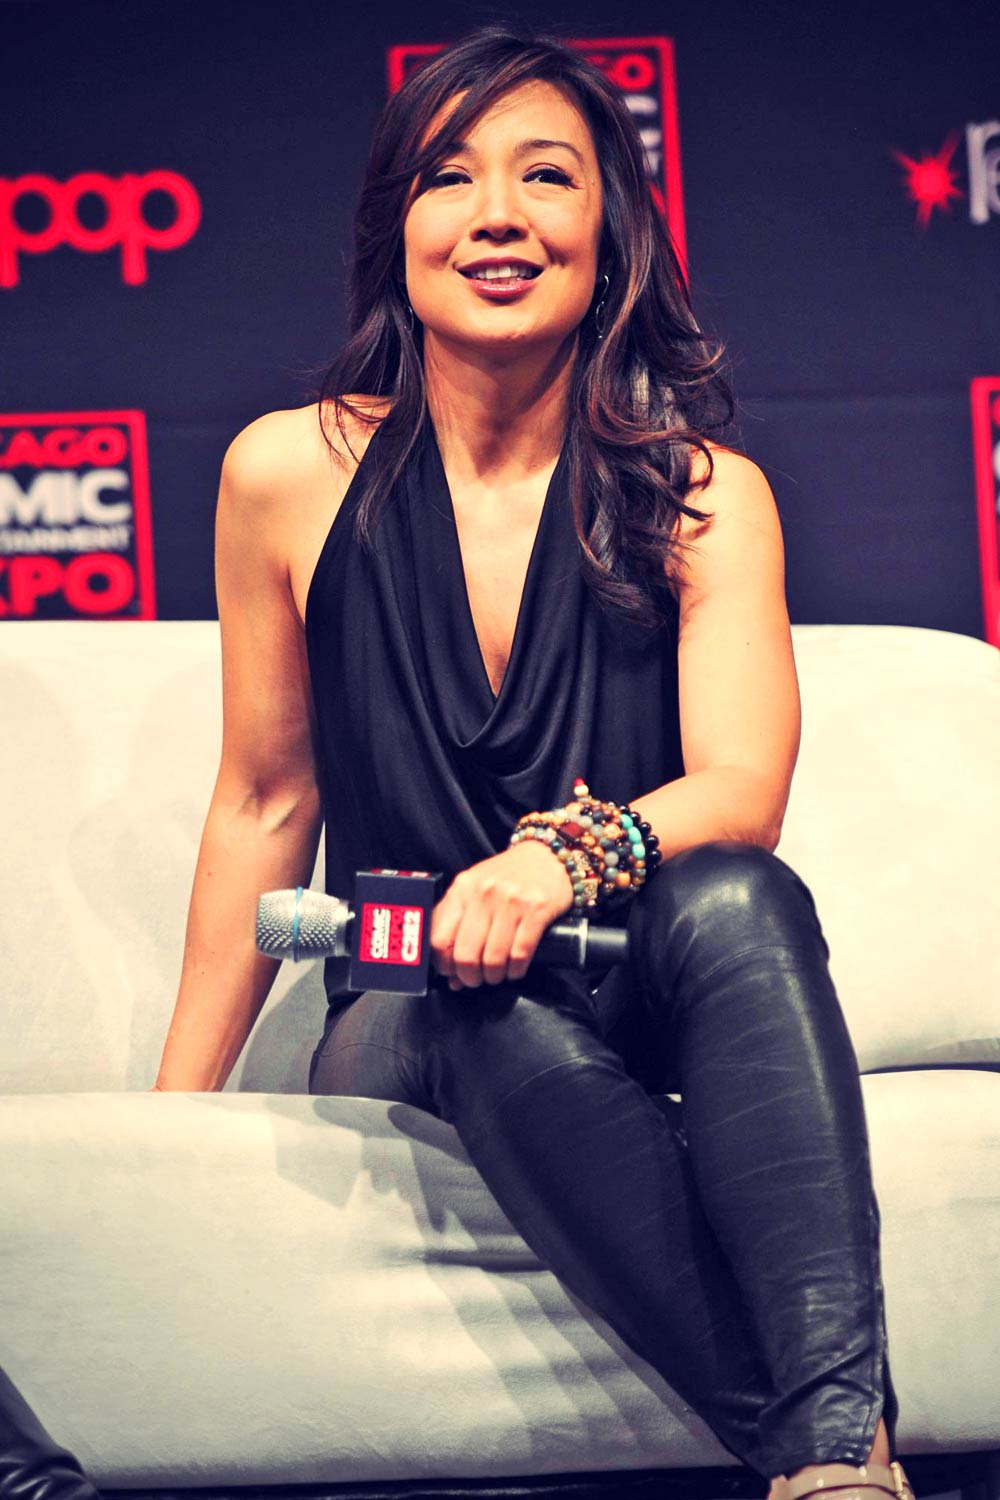 Ming-Na Wen attends Chicago Comic & Entertainment Expo